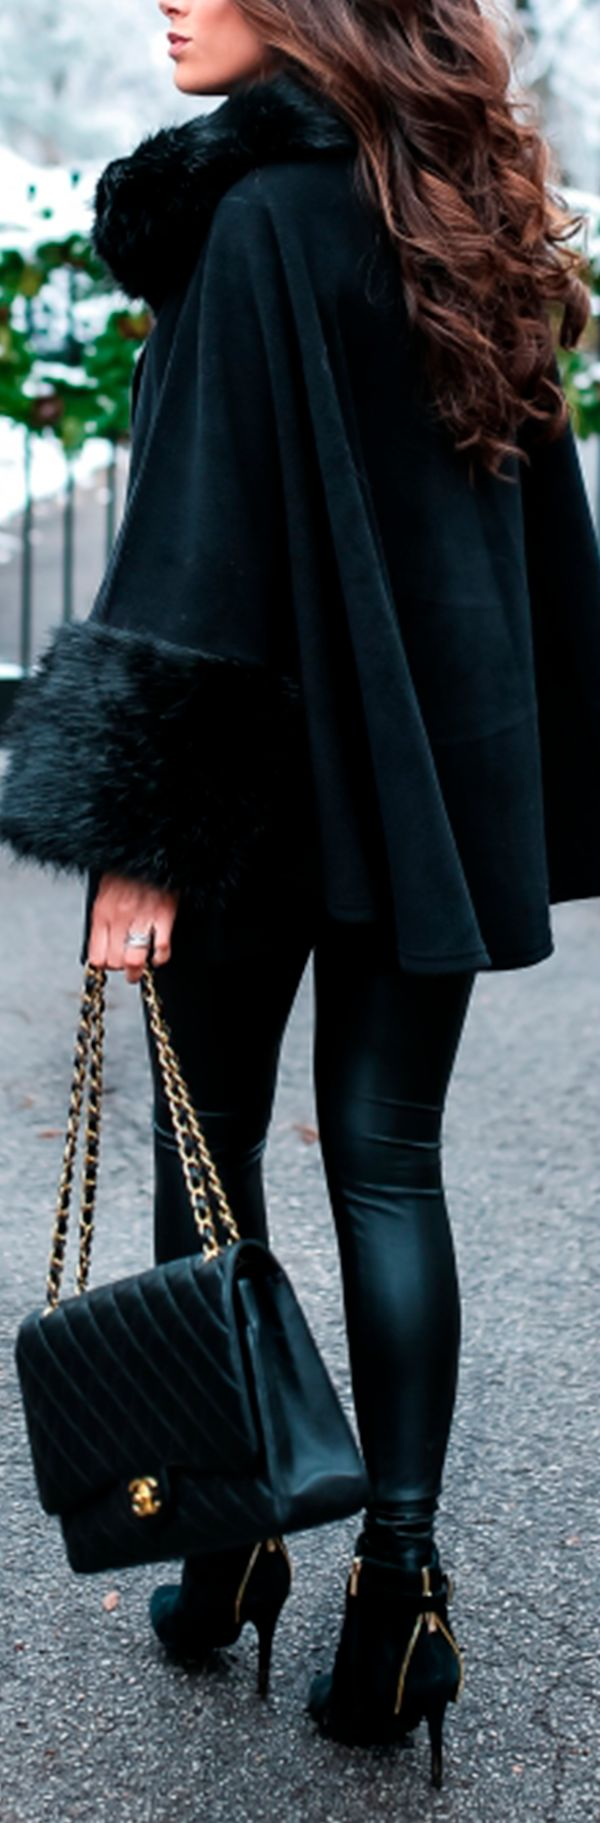 Fashion For Women. Winter outfit. Winter fashion style. H&M turtleneck, Parkhust Black Cape, Lysse Leggings, Jessica Simpsons Booties, J.Crew Earrings, Hypnotic lipstick, Chanel Handbag. Emily Ann Gemma, The Sweetest Thing Blog. #EmilyAnnGemma #TheSweetes